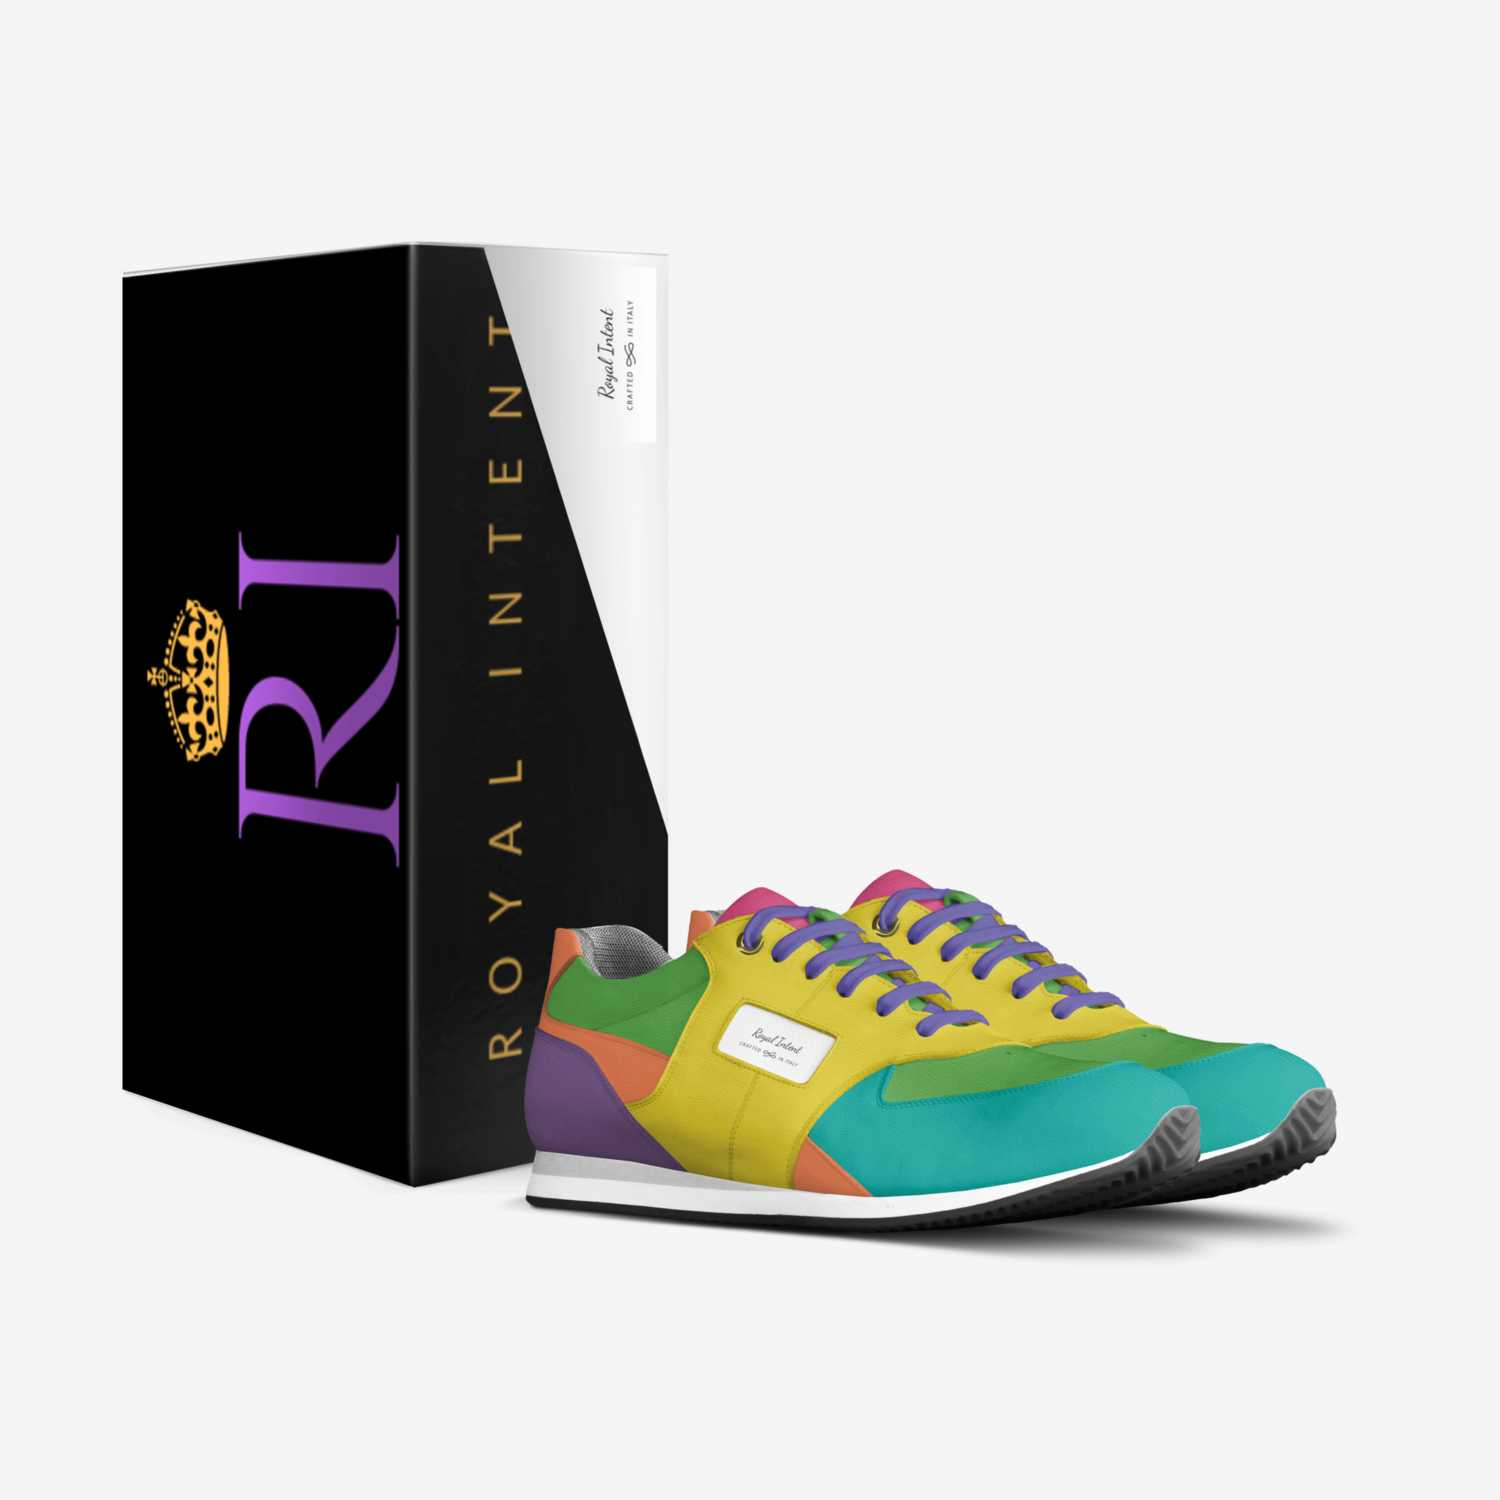 Royal Intent custom made in Italy shoes by Kiauna Griffin   Box view